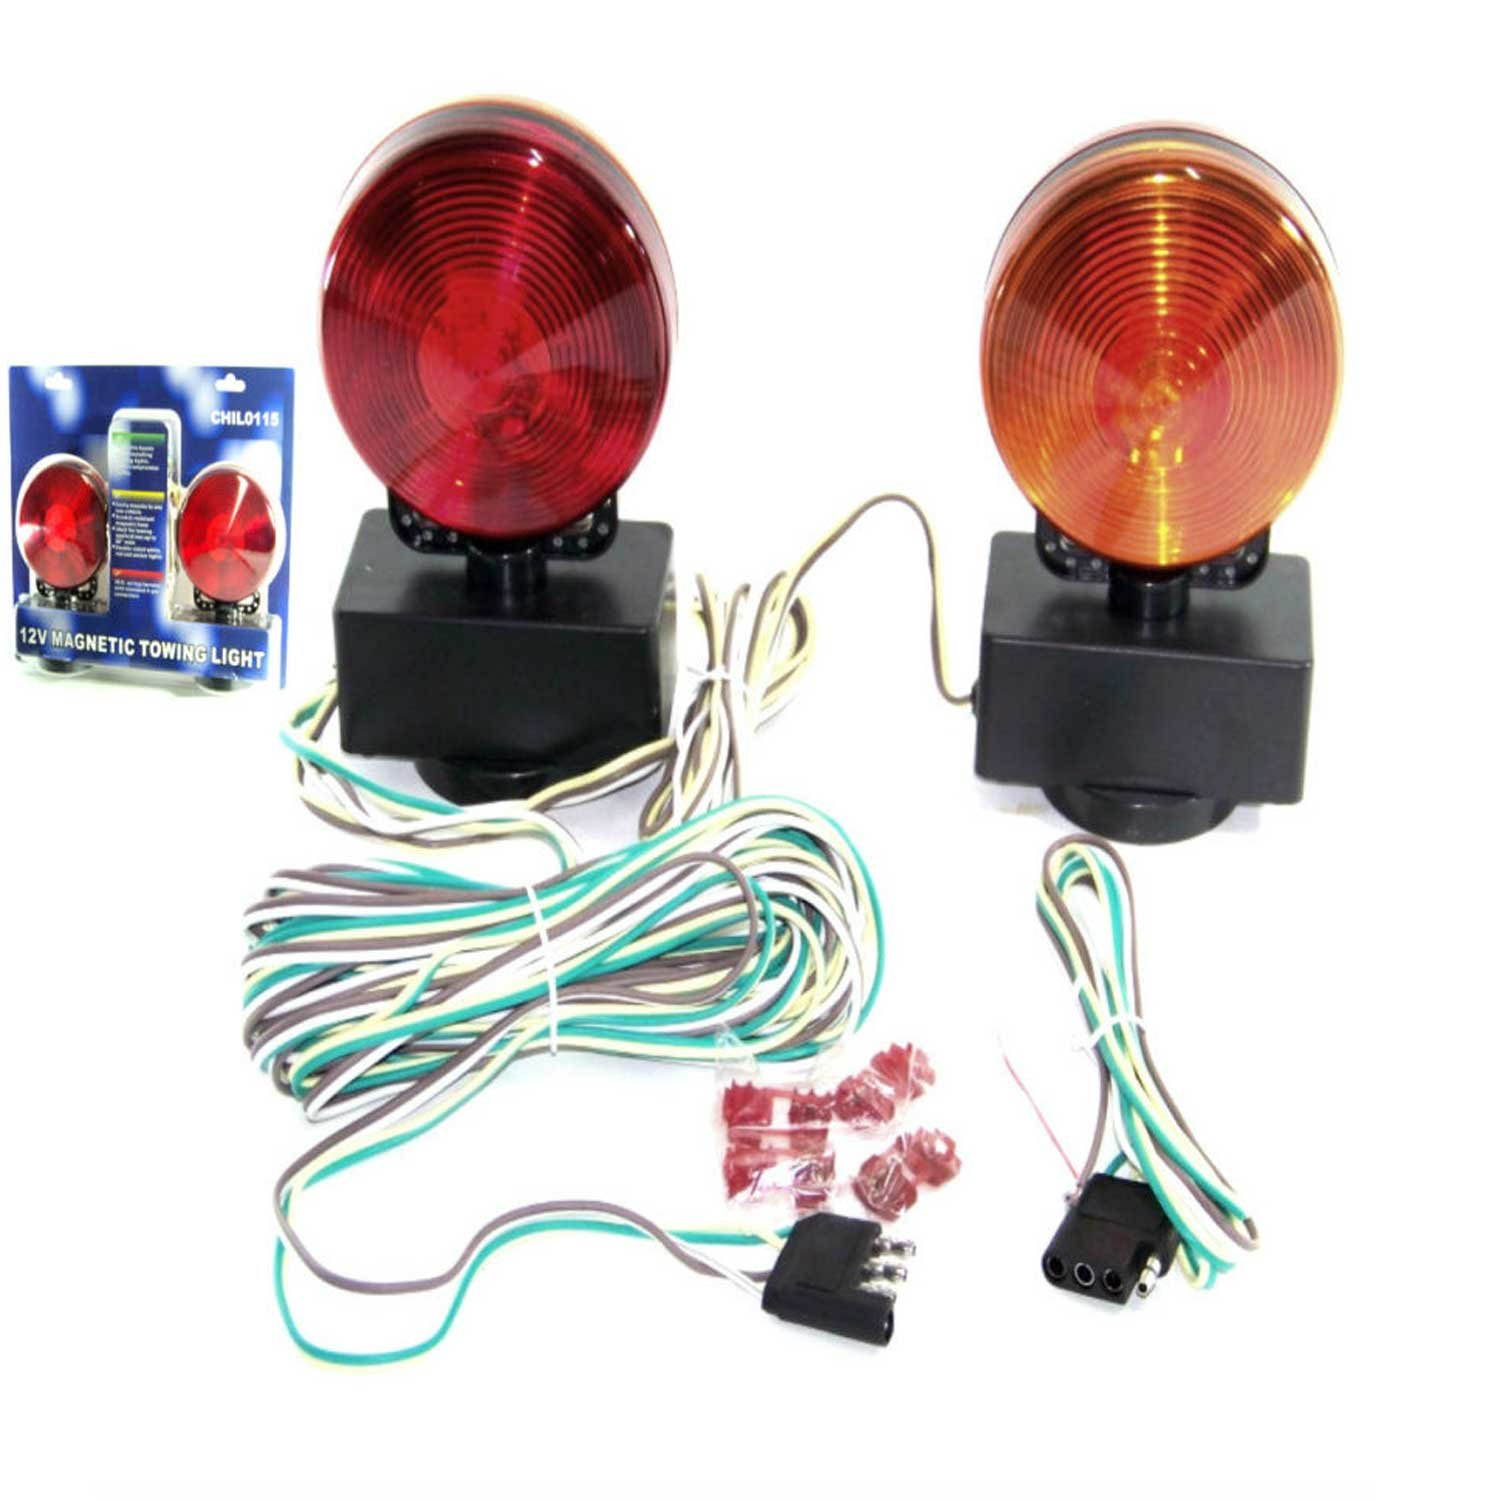 12v 3 In 1 Magnetic Towing Tow Light Kit Trailer Truck Tail Break Signal Lights